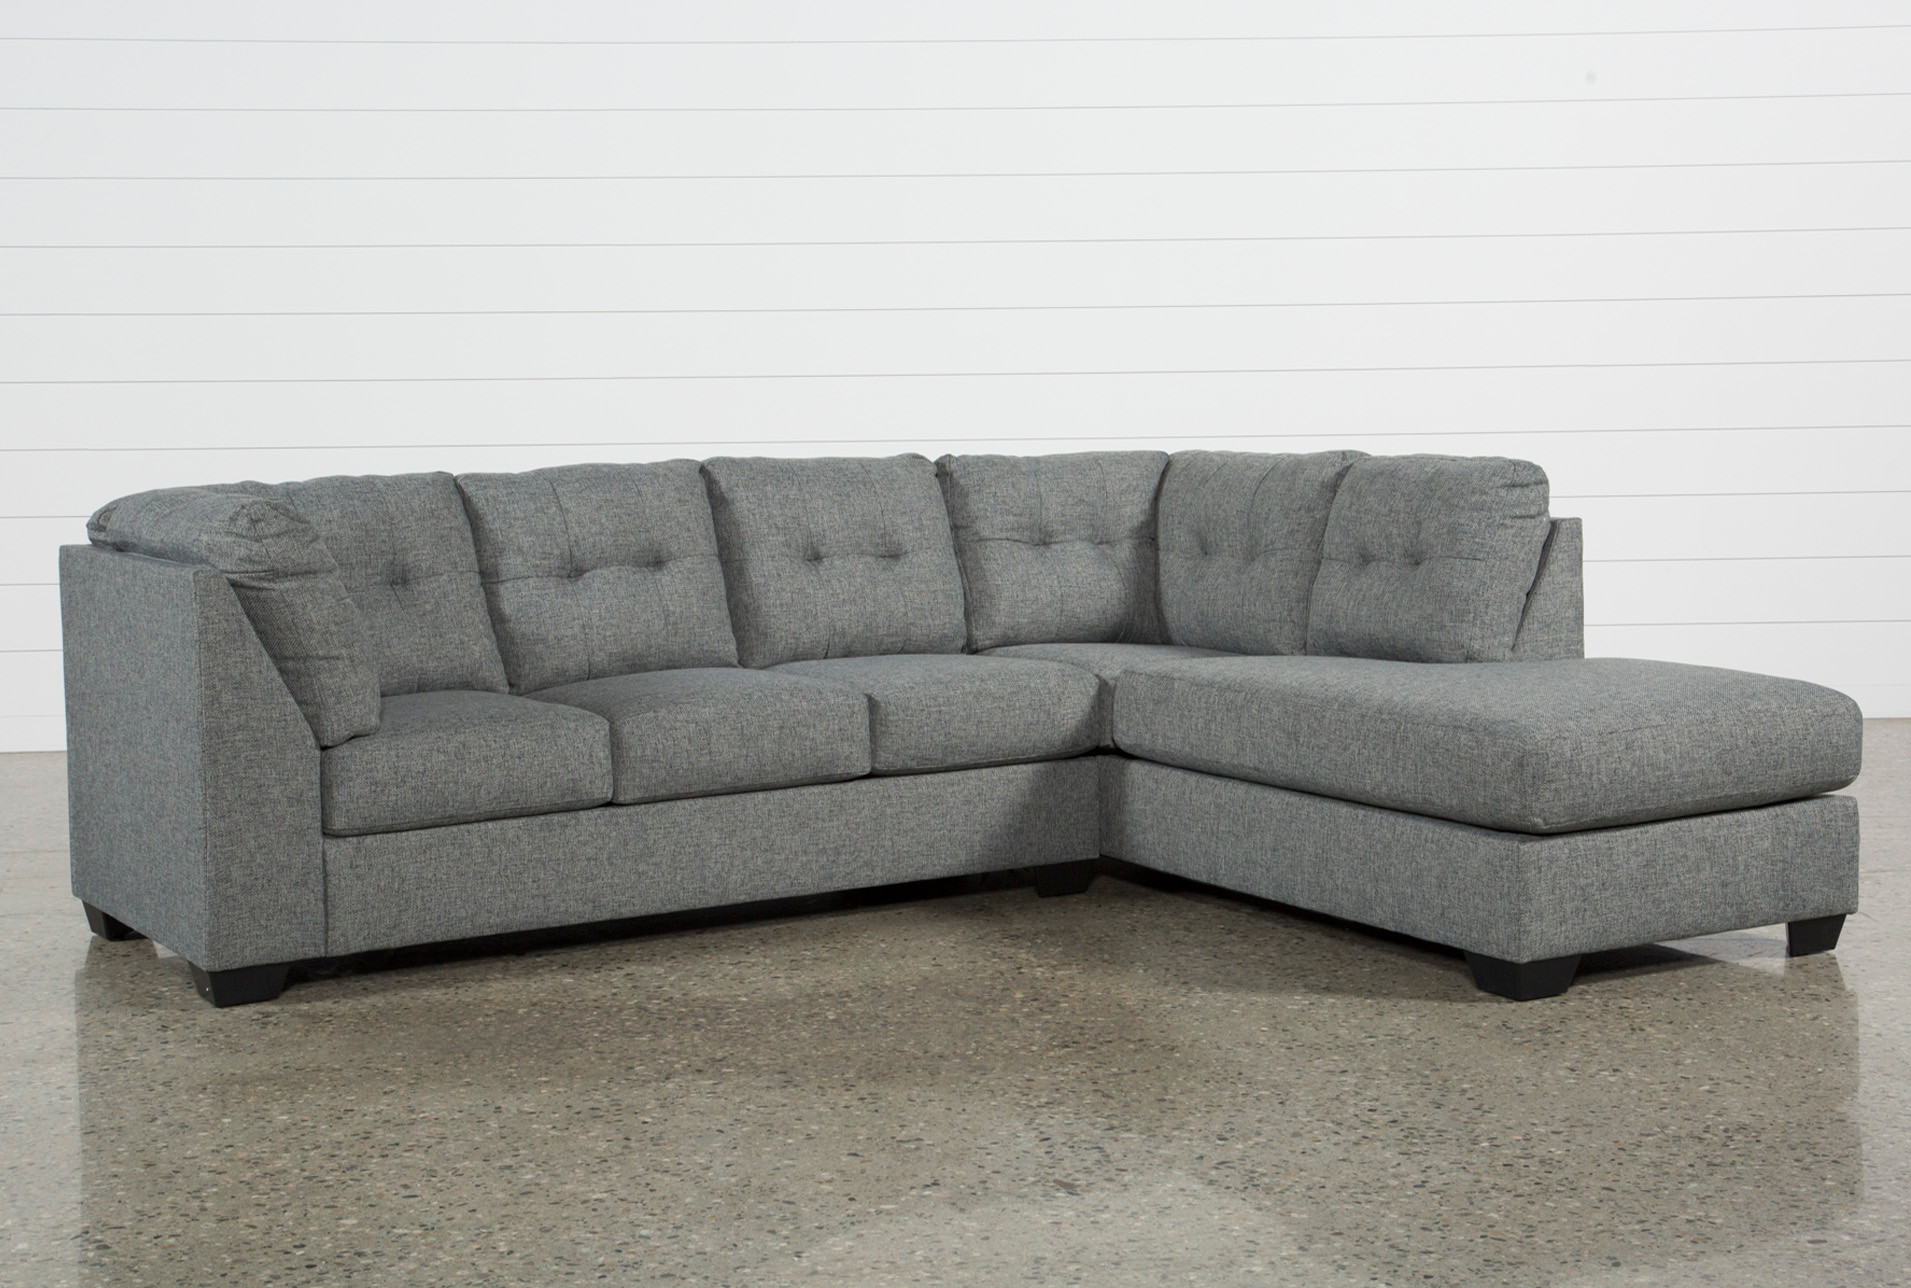 2 piece sectional sofa chaise mauve throws arrowmask w raf living spaces